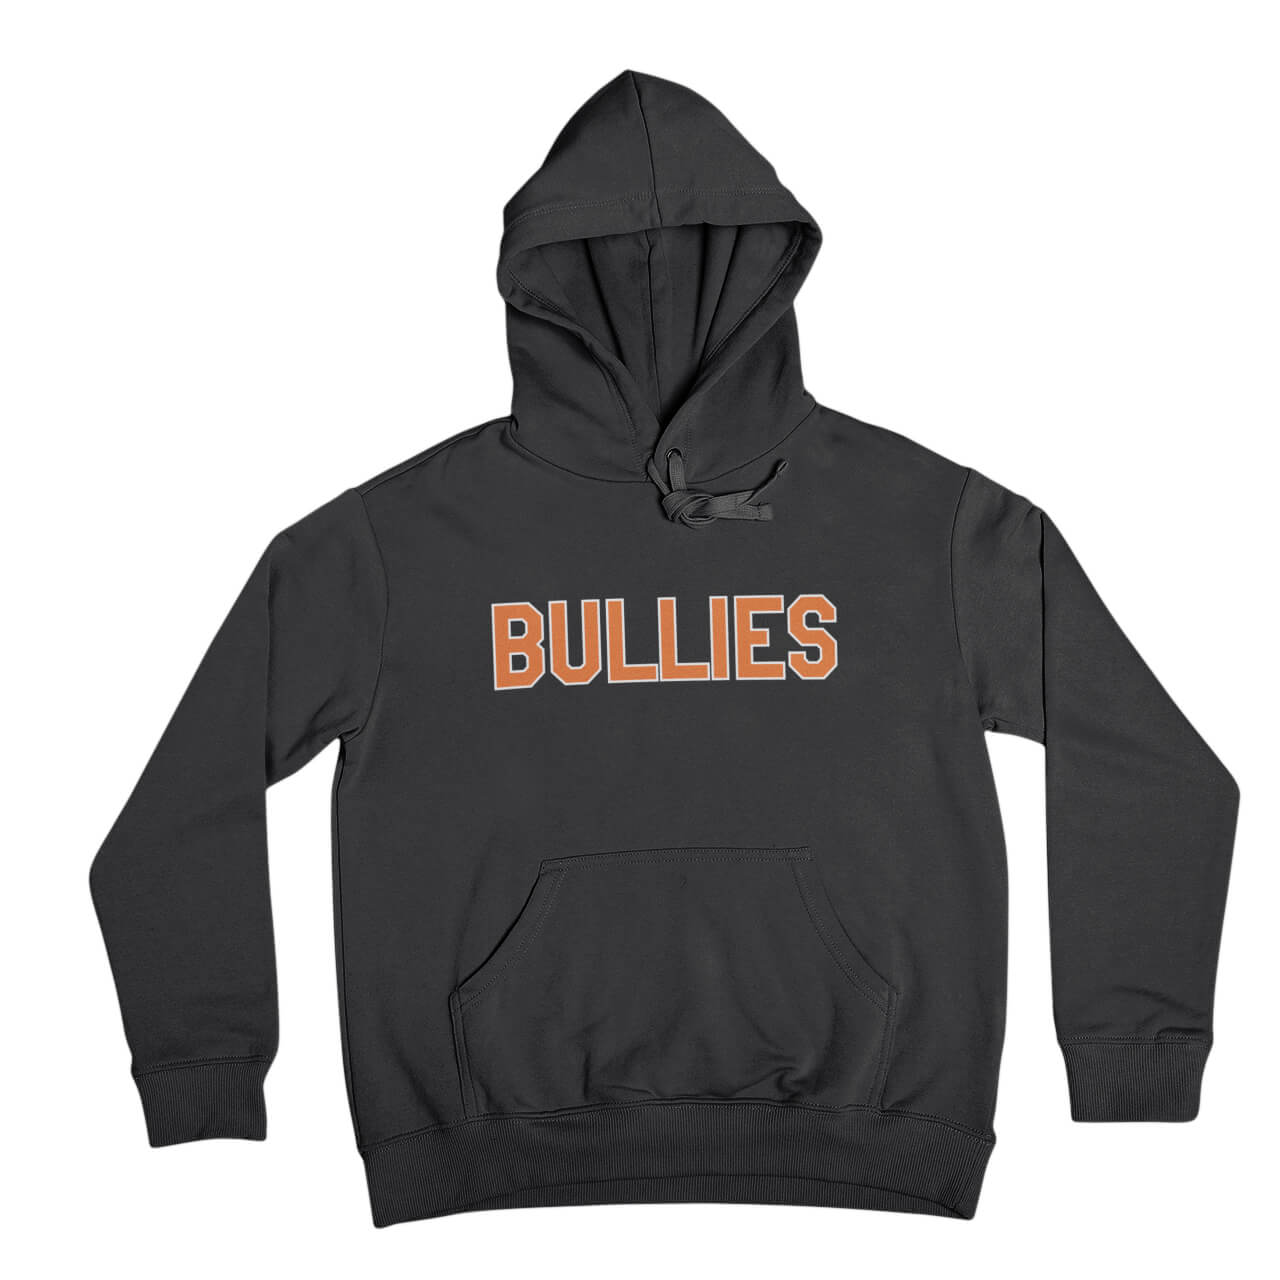 philadelphia flyers broad street bullies black hooded sweatshirt from phillygoat